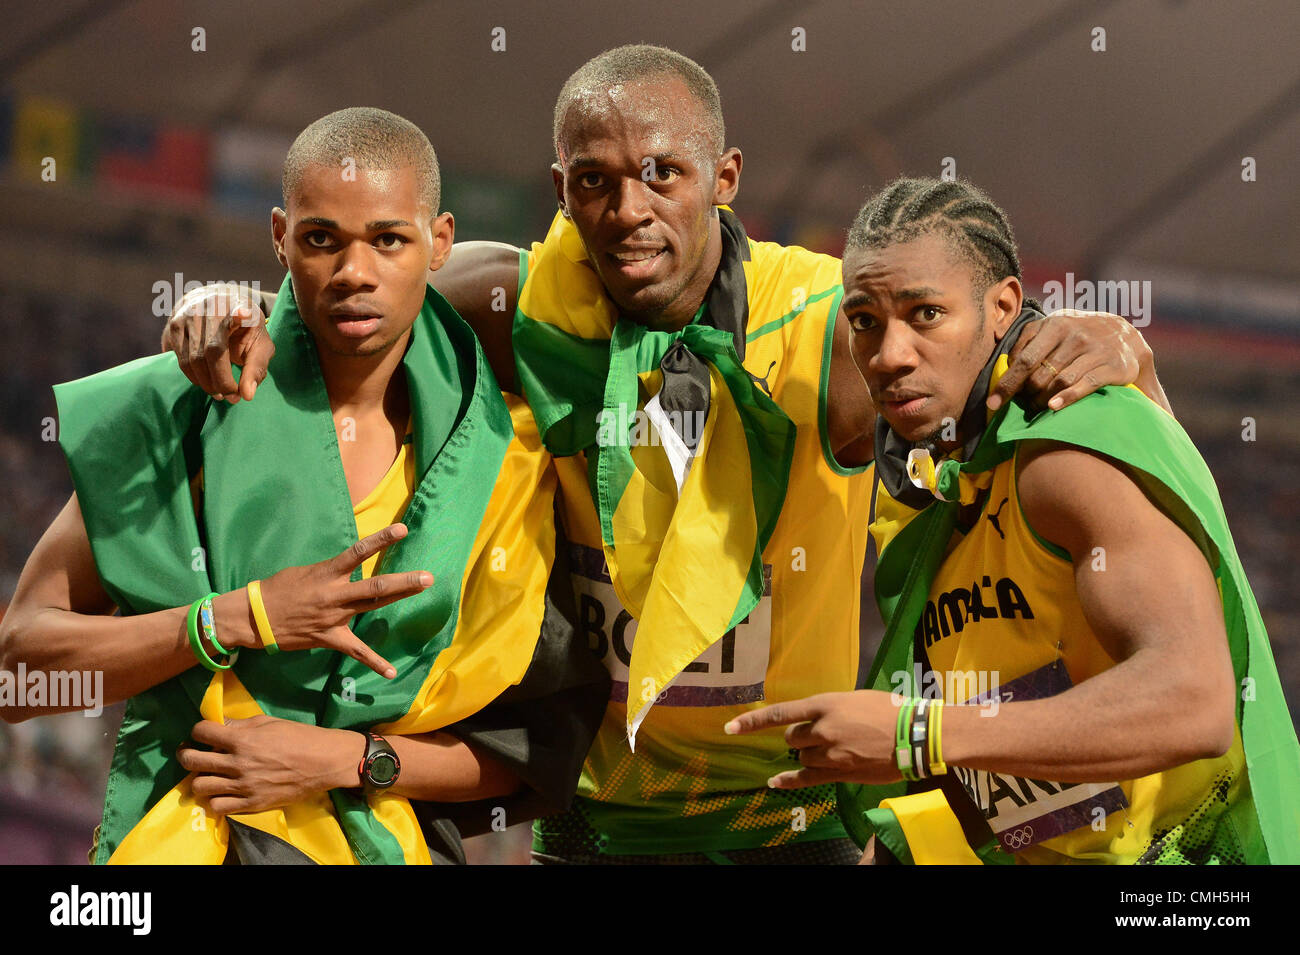 LONDON, ENGLAND - AUGUST 9, Warren Weir, Usain Bolt and Yohan Blake of Jamaica, medallists in the mens 200m during - Stock Image